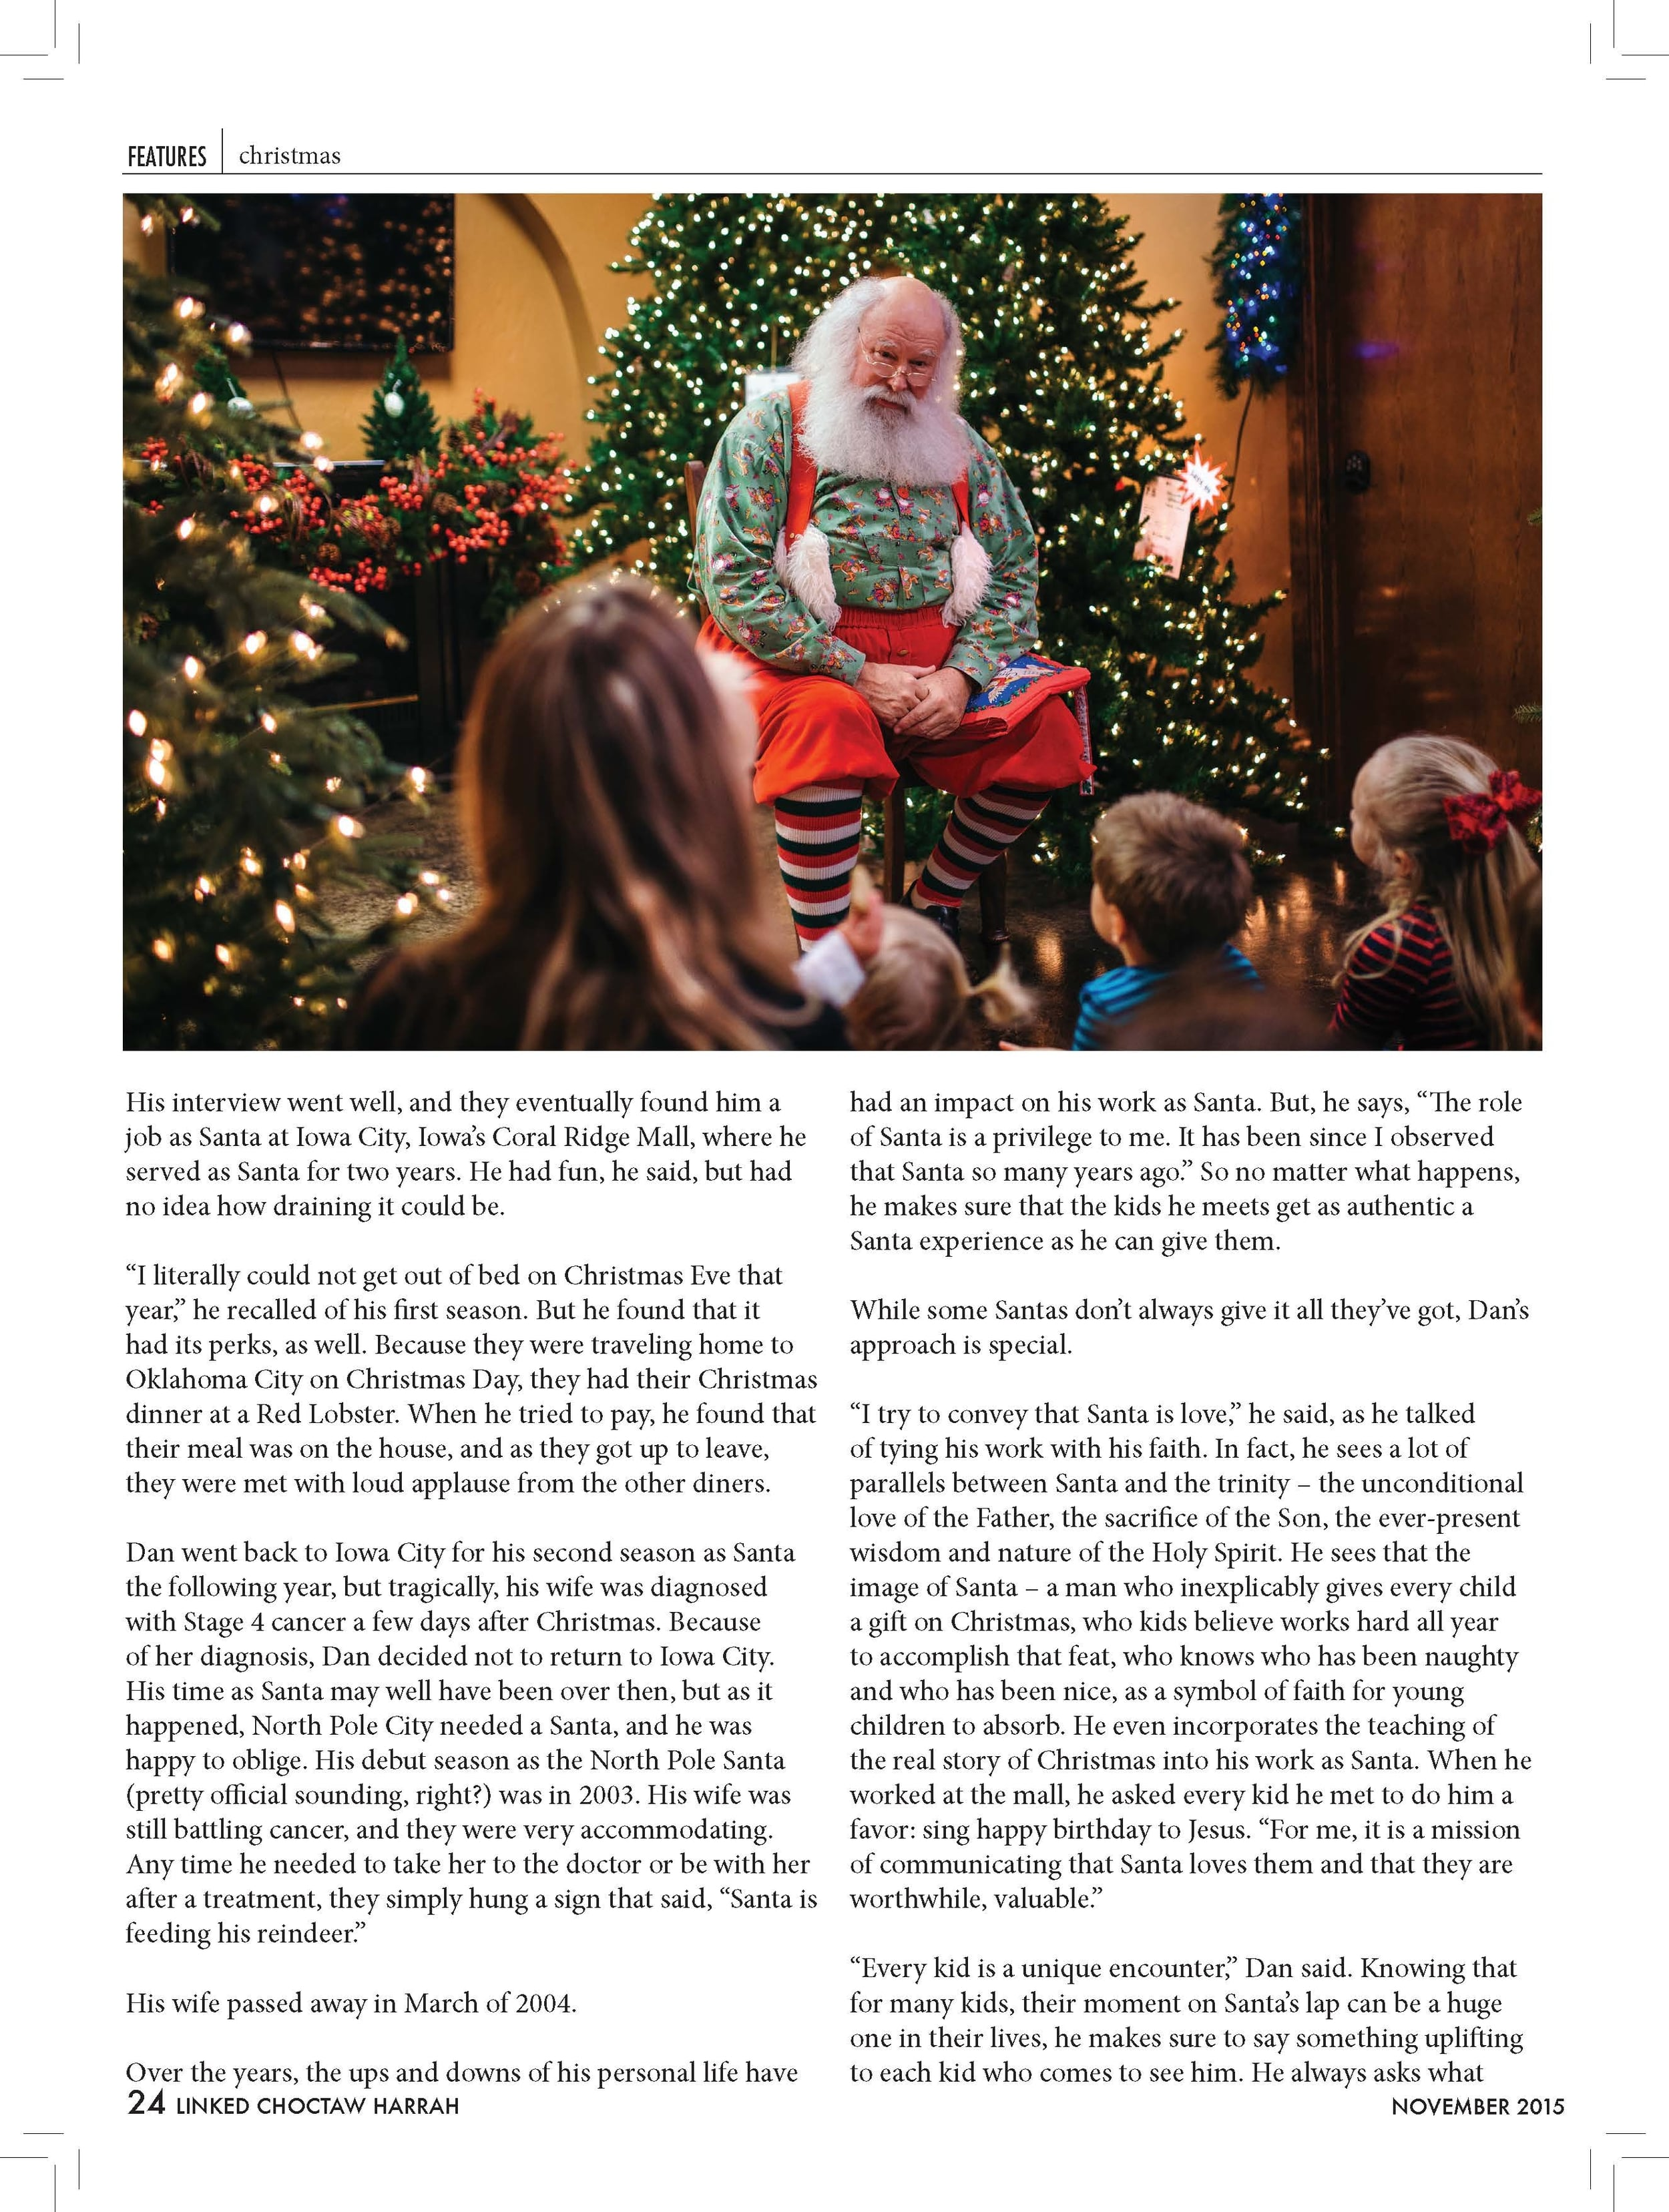 """His interview went well, and they eventually found him a job as Santa at Iowa City, Iowa's Coral Ridge Mall, where he served as Santa for two years. He had fun, he said, but had no idea how draining it could be. """"I literally could not get out of bed on Christmas Eve that year,"""" he recalled of his first season. But he found that it had its perks, as well. Because they were traveling home to Oklahoma City on Christmas Day, they had their Christmas dinner at a Red Lobster. When he tried to pay, he found that their meal was on the house, and as they got up to leave, they were met with loud applause from the other diners. Dan went back to Iowa City for his second season as Santa the following year, but tragically, his wife was diagnosed with Stage 4 cancer a few days after Christmas. Because  of her diagnosis, Dan decided not to return to Iowa City. His time as Santa may well have been over then, but as it happened, North Pole City needed a Santa, and he was happy to oblige. His debut season as the North Pole Santa (pretty official sounding, right?) was in 2003. His wife was still battling cancer, and they were very accommodating. Any time he needed to take her to the doctor or be with her after a treatment, they simply hung a sign that said, """"Santa is feeding his reindeer."""" His wife passed away in March of 2004. Over the years, the ups and downs of his personal life have 24 LINKED CHOCTAW HARRAH  had an impact on his work as Santa. But, he says, """"The role of Santa is a privilege to me. It has been since I observed that Santa so many years ago."""" So no matter what happens, he makes sure that the kids he meets get as authentic a Santa experience as he can give them. While some Santas don't always give it all they've got, Dan's approach is special. """"I try to convey that Santa is love,"""" he said, as he talked  of tying his work with his faith. In fact, he sees a lot of parallels between Santa and the trinity – the unconditional love of the Father, the sacrifice of the Son, th"""